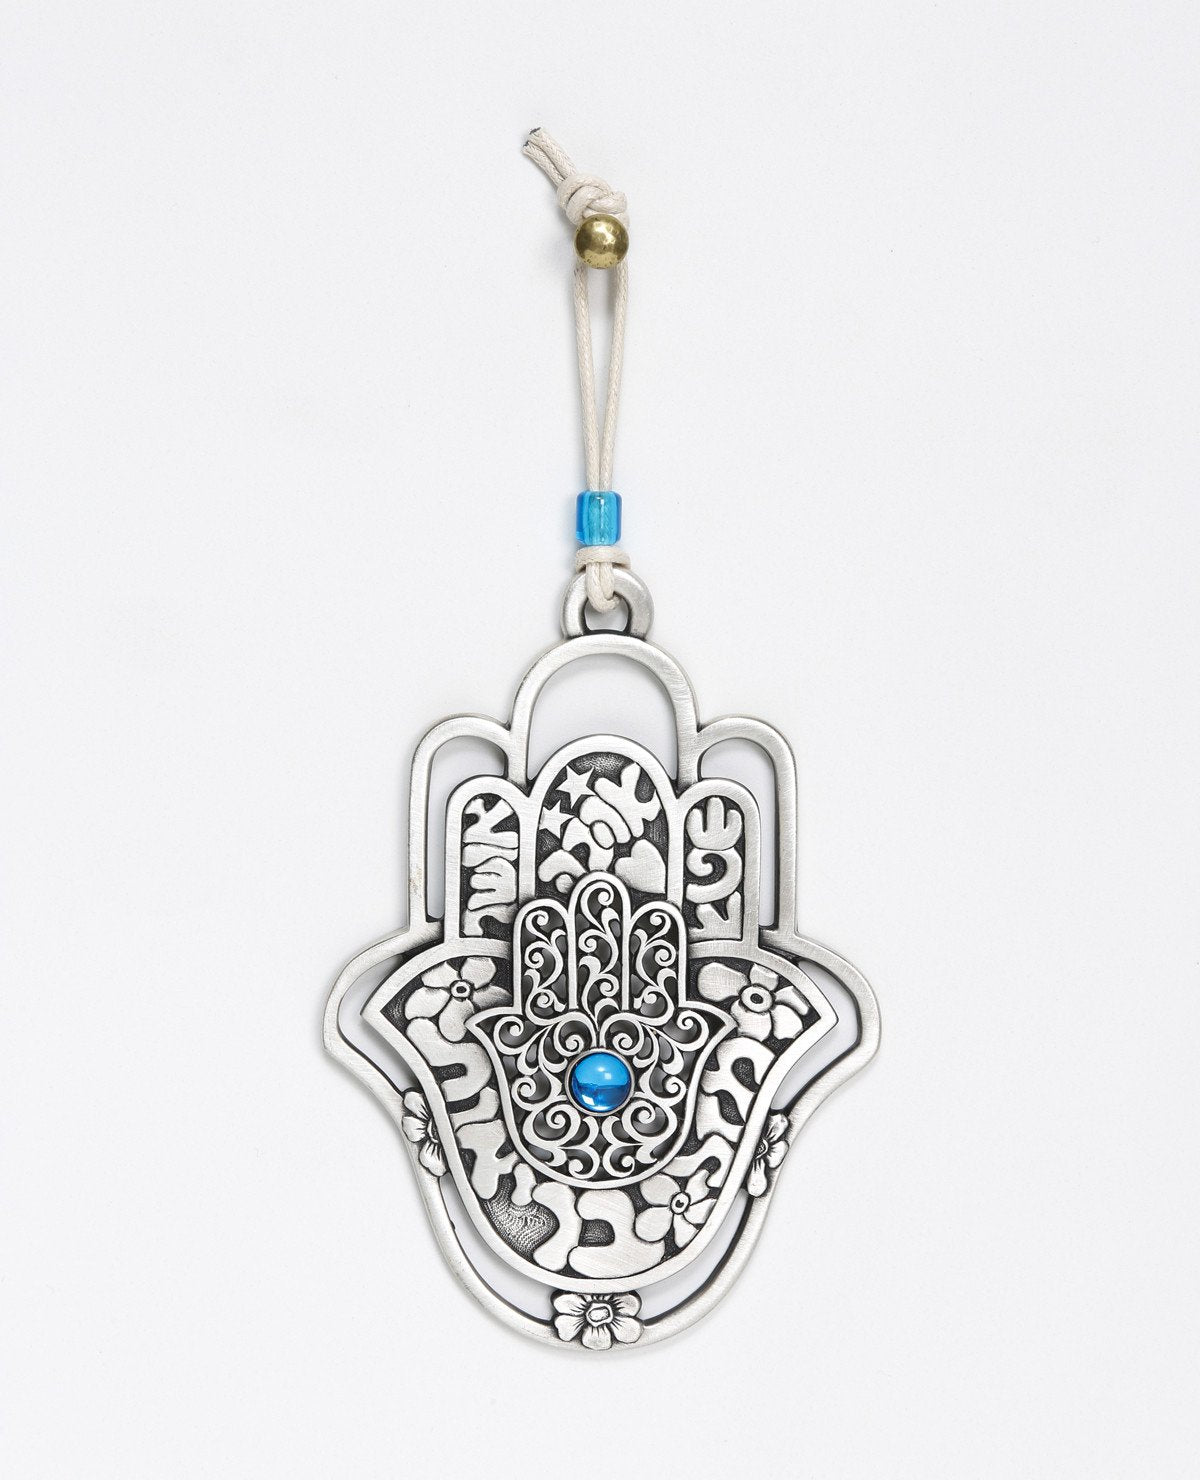 A hanging Hamsa ornament, designed in exquisite beauty: a Hamsa within a Hamsa within a Hamsa. The outer one - a hollow frame decorated by delicate flowers. The middle one - all embossed words of blessing - for abundance, luck, health, happiness and love. The inner one - filigree decoration with a blue stone at the center. The ornament is coated in sterling silver and comes with a faux leather string deocorated by a blue bead. An impressive and very meaningful gift that is a pleasure to grant to our loved o